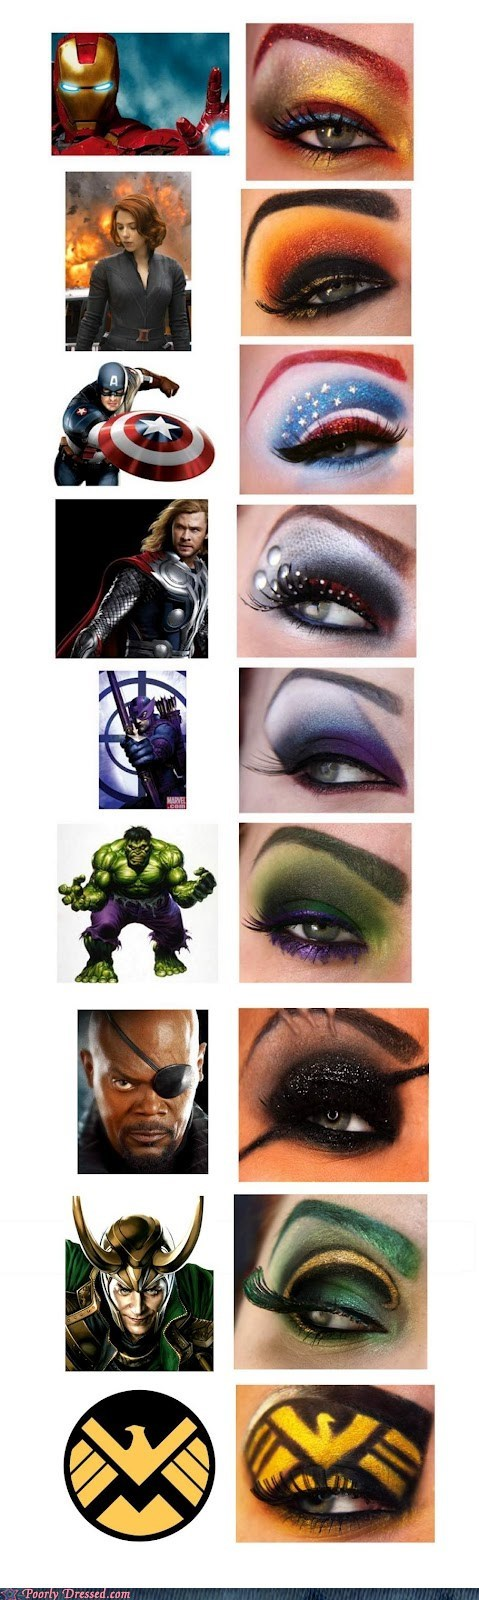 avengers g rated Hall of Fame makeup nerdgasm Poorly Dresssed super heroes - 6181379328